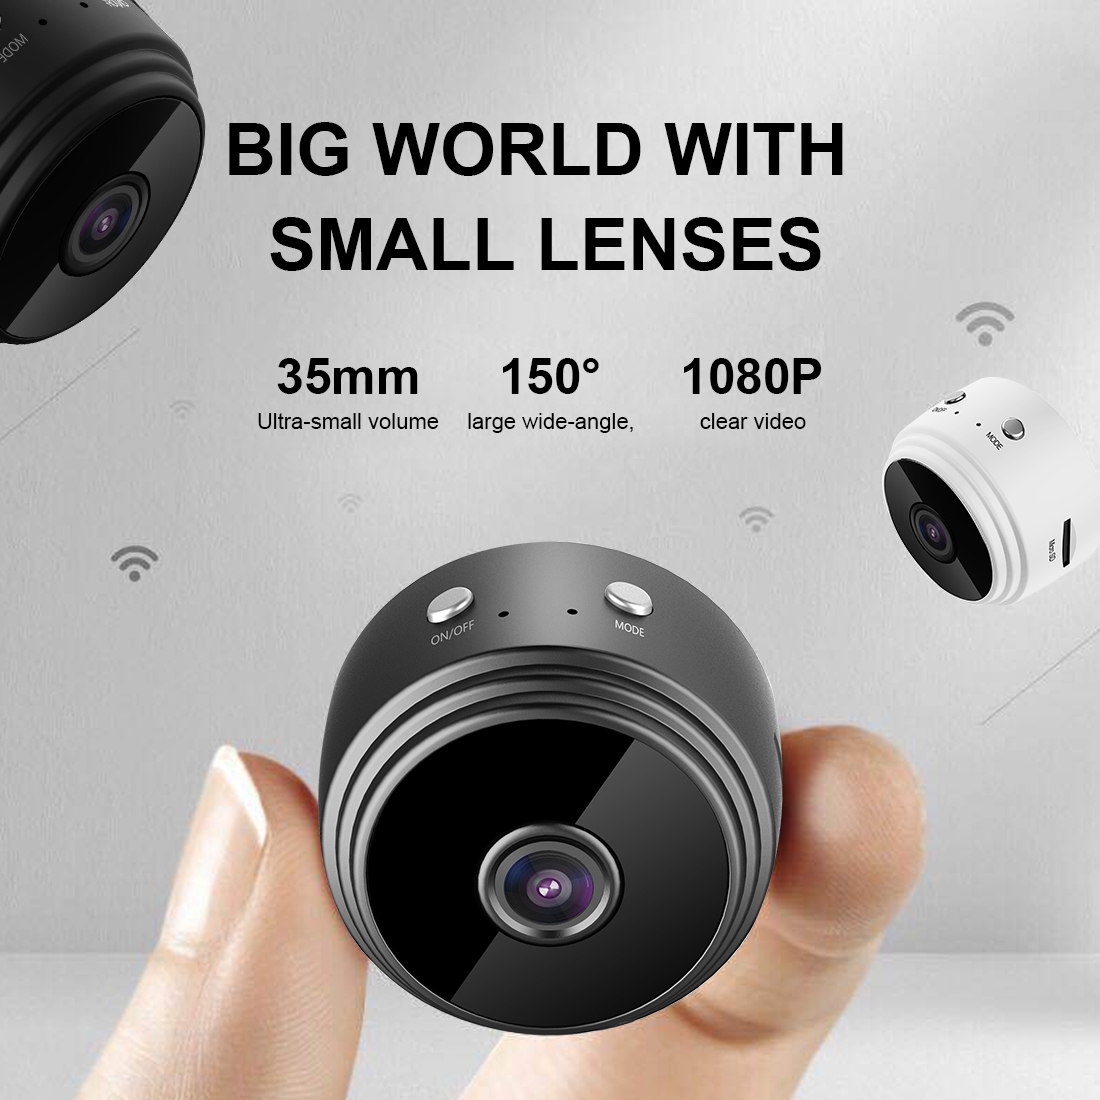 1080P Mini Camera A9 Wifi Camera Wireless Home Security Surveillance Camera Motion Detection IR Night Vision App Remote Monitor